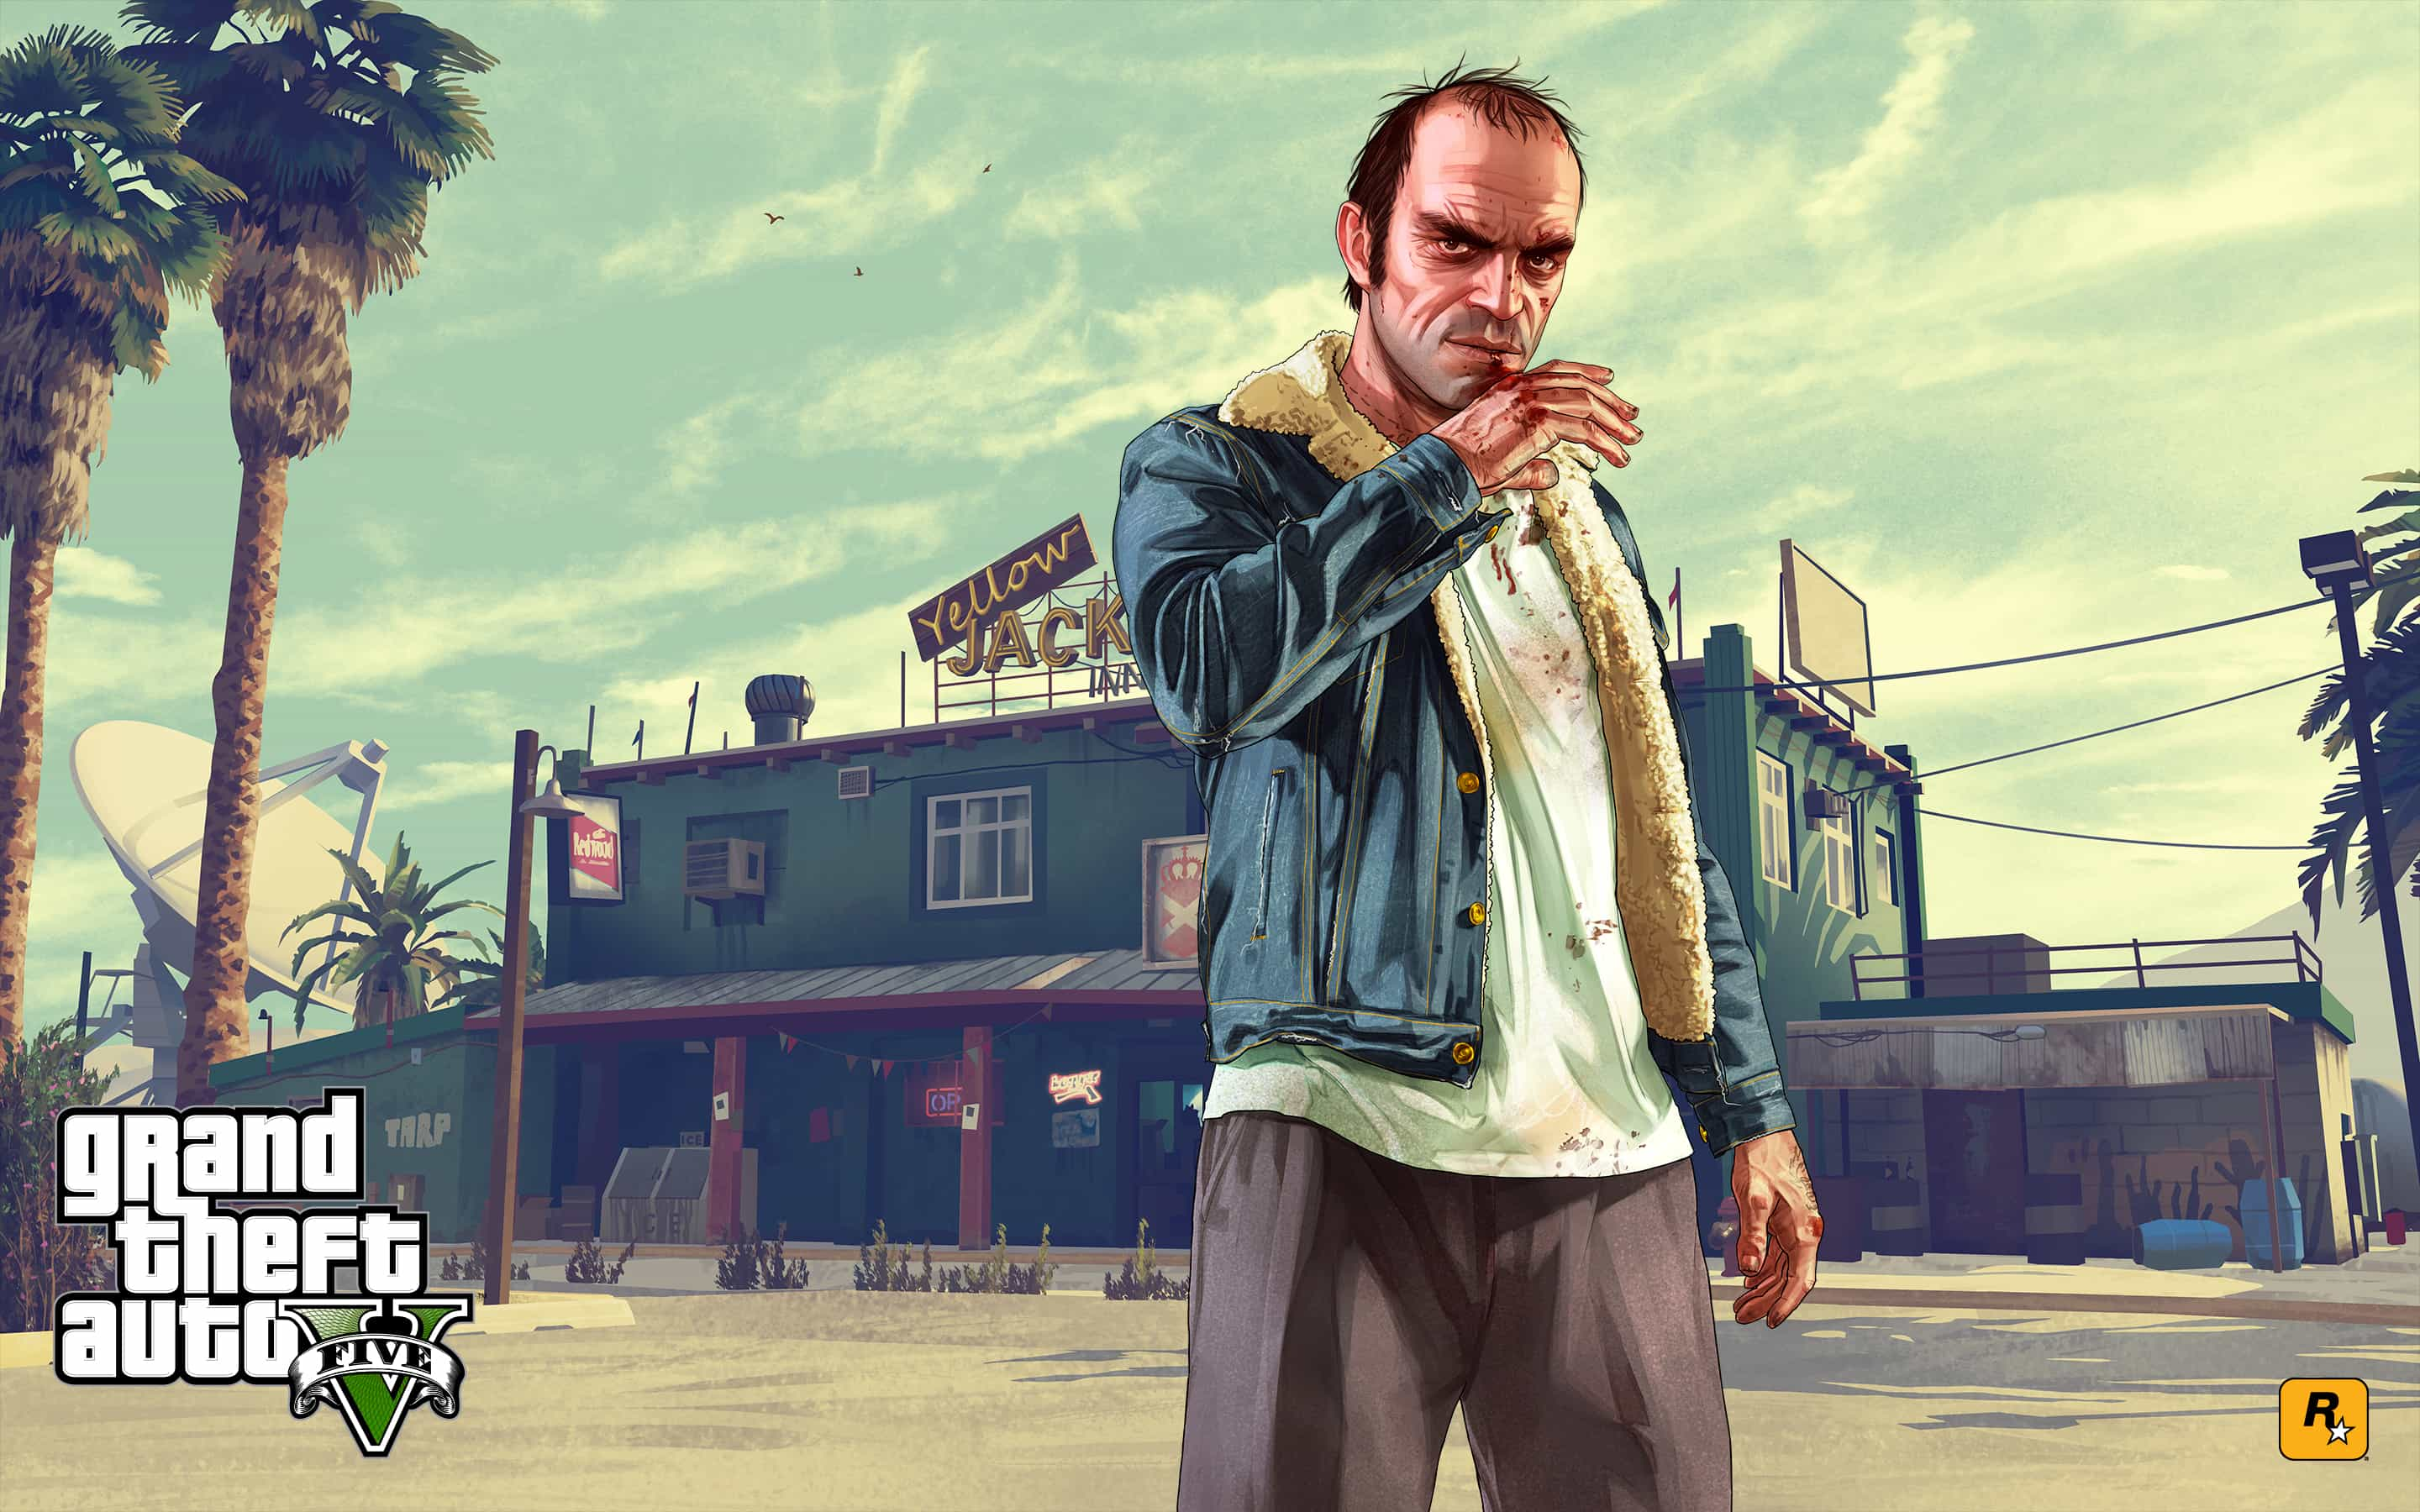 gta for xbox 360 wallpapers - photo #1